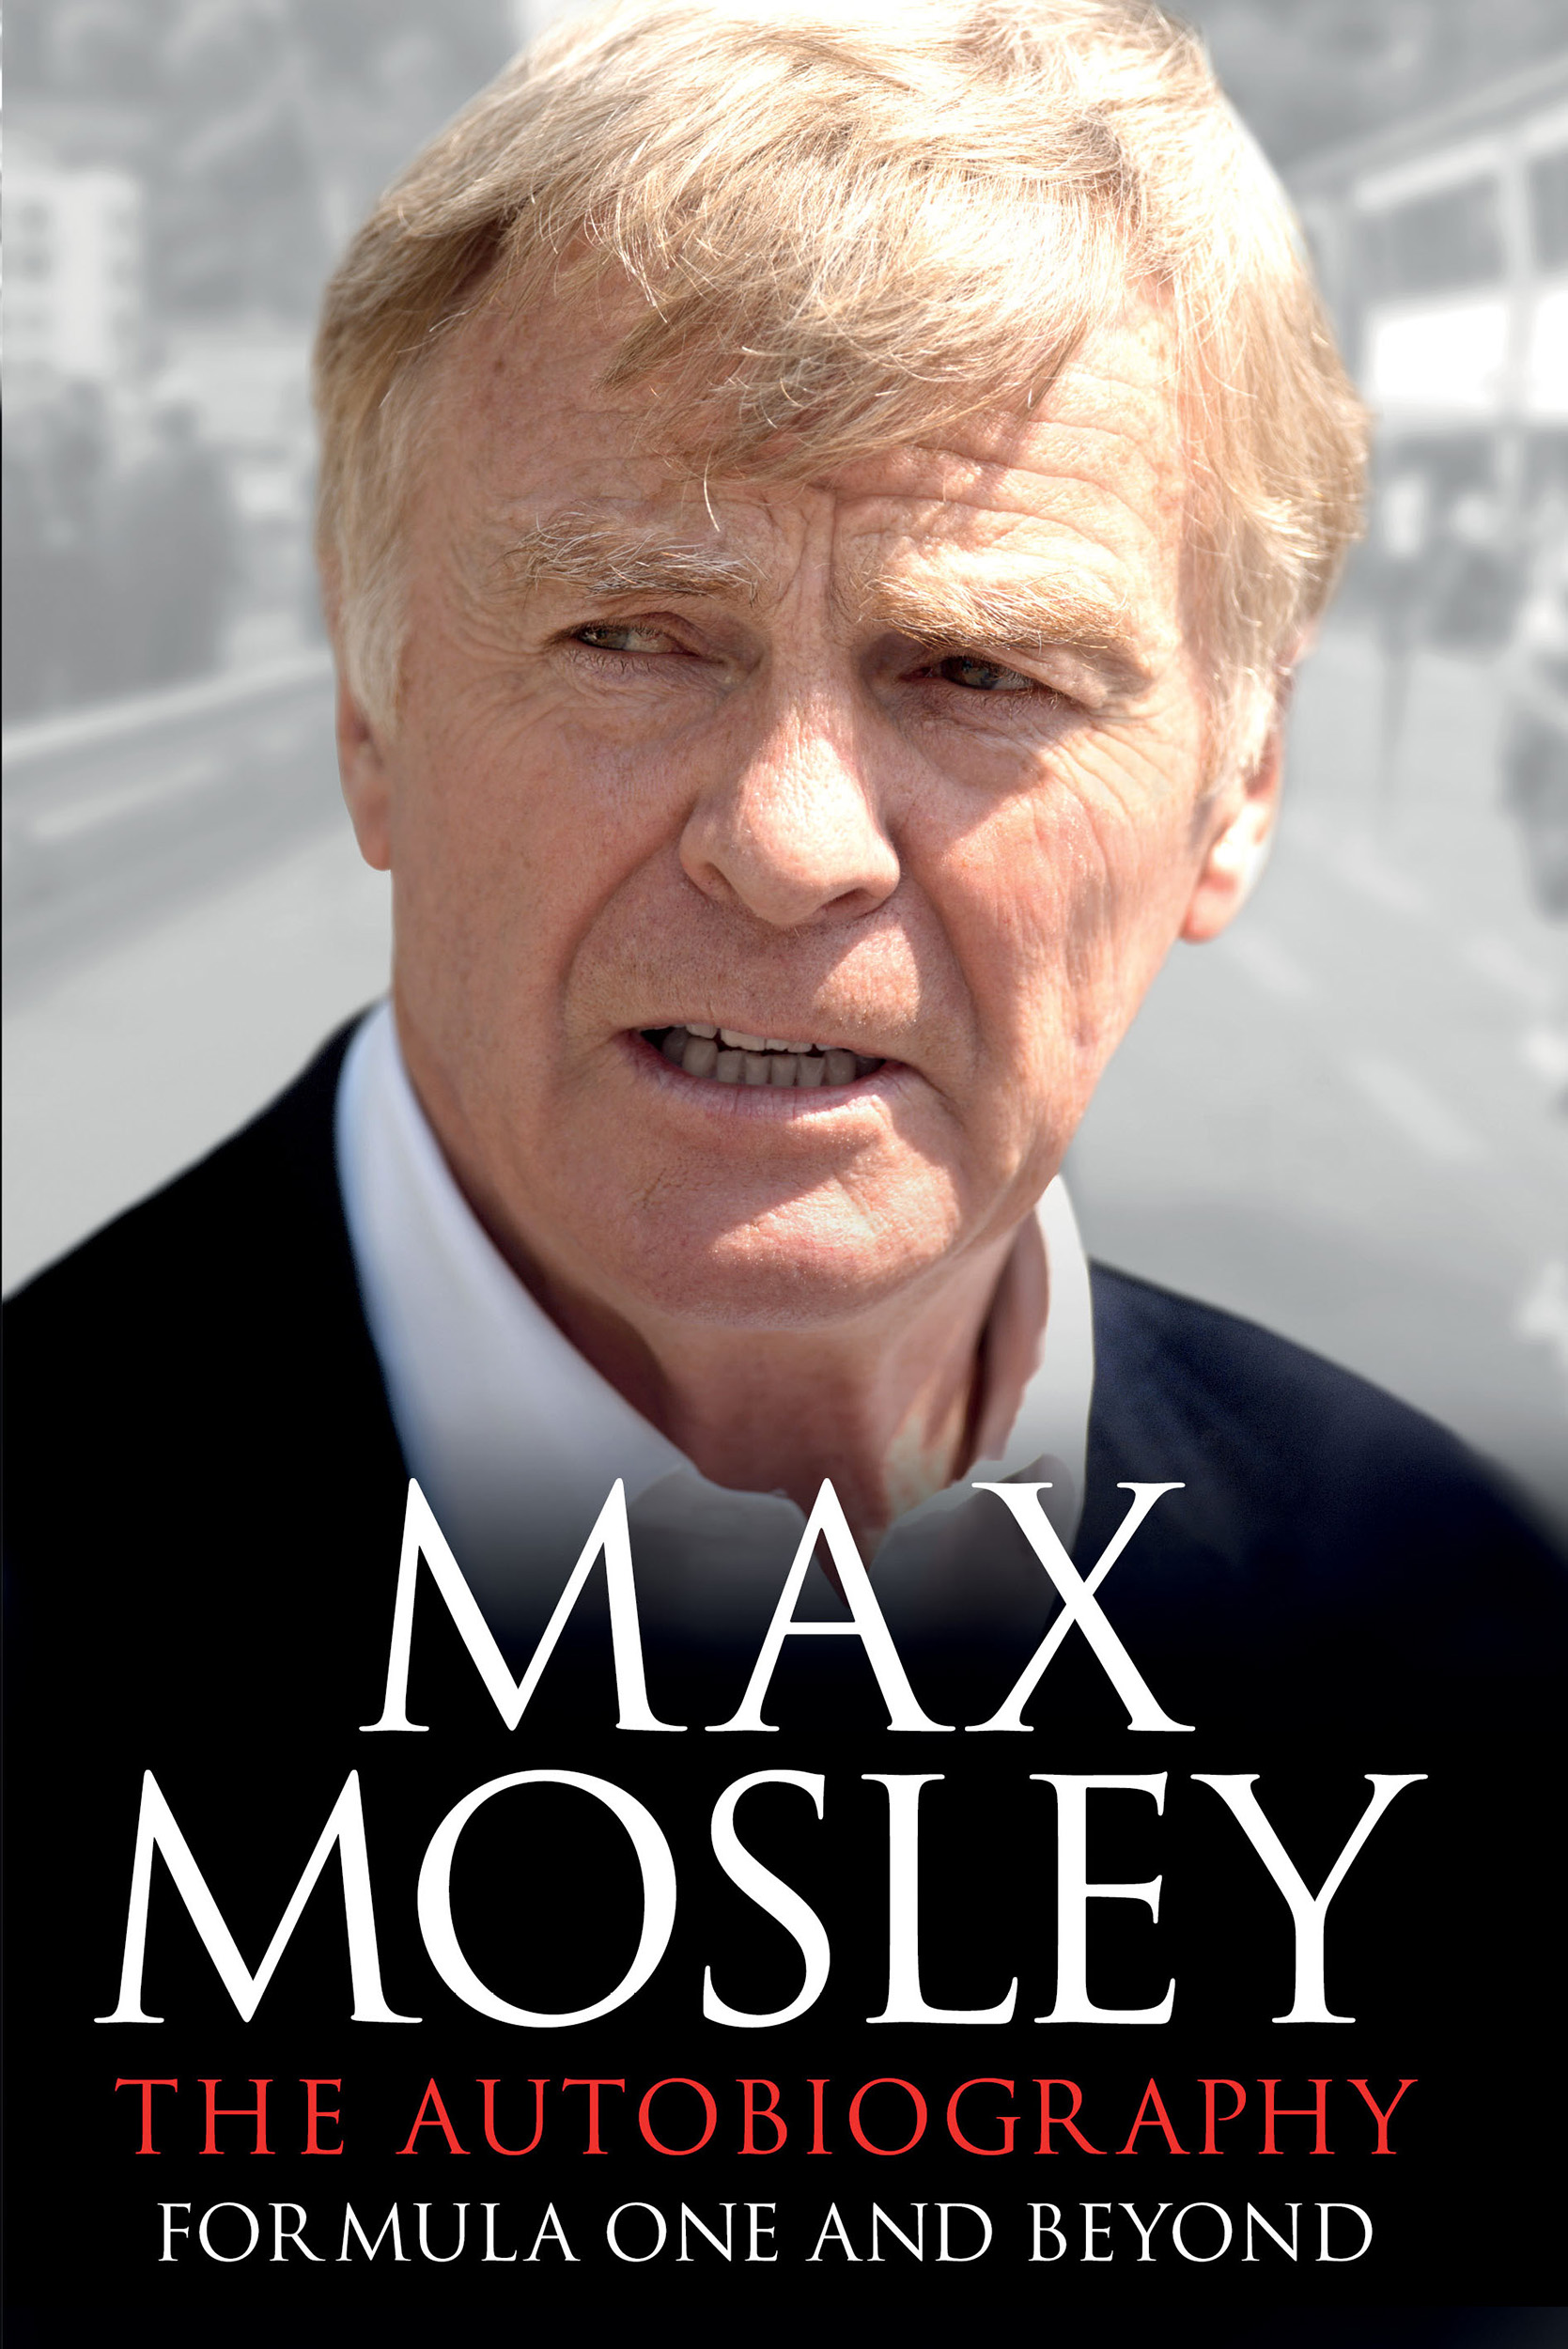 Sports Book Review - Max Mosley: Formula One and Beyond